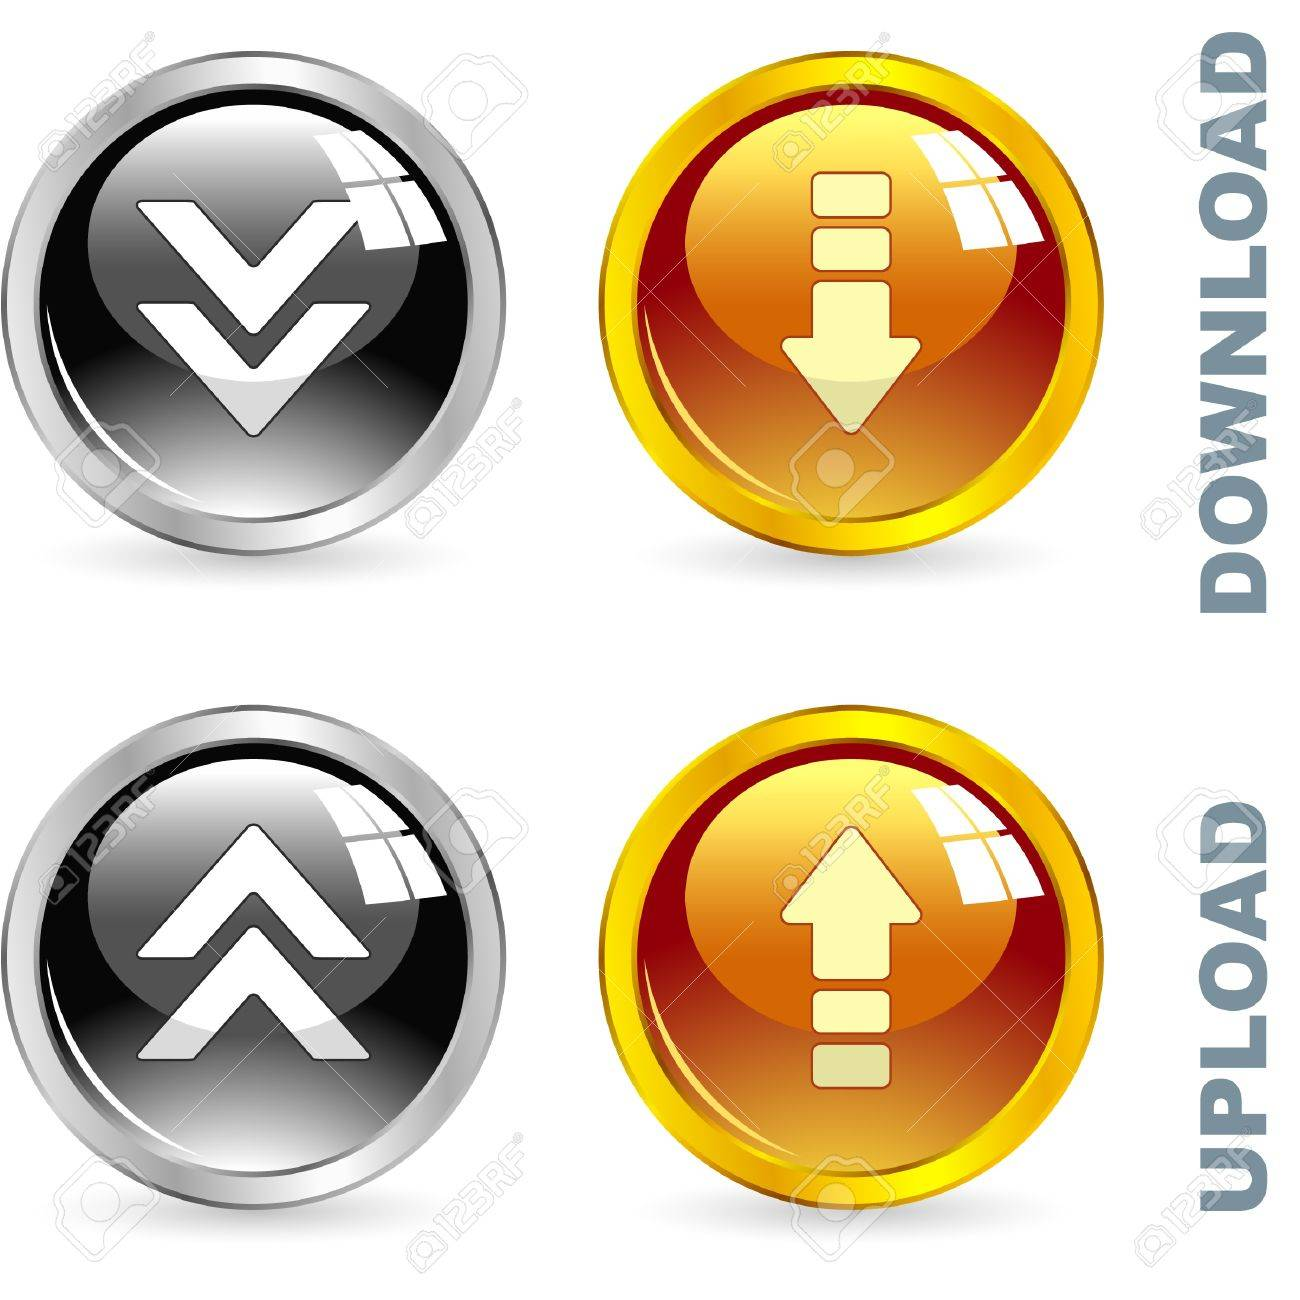 Download and upload button set. Stock Vector - 8890978